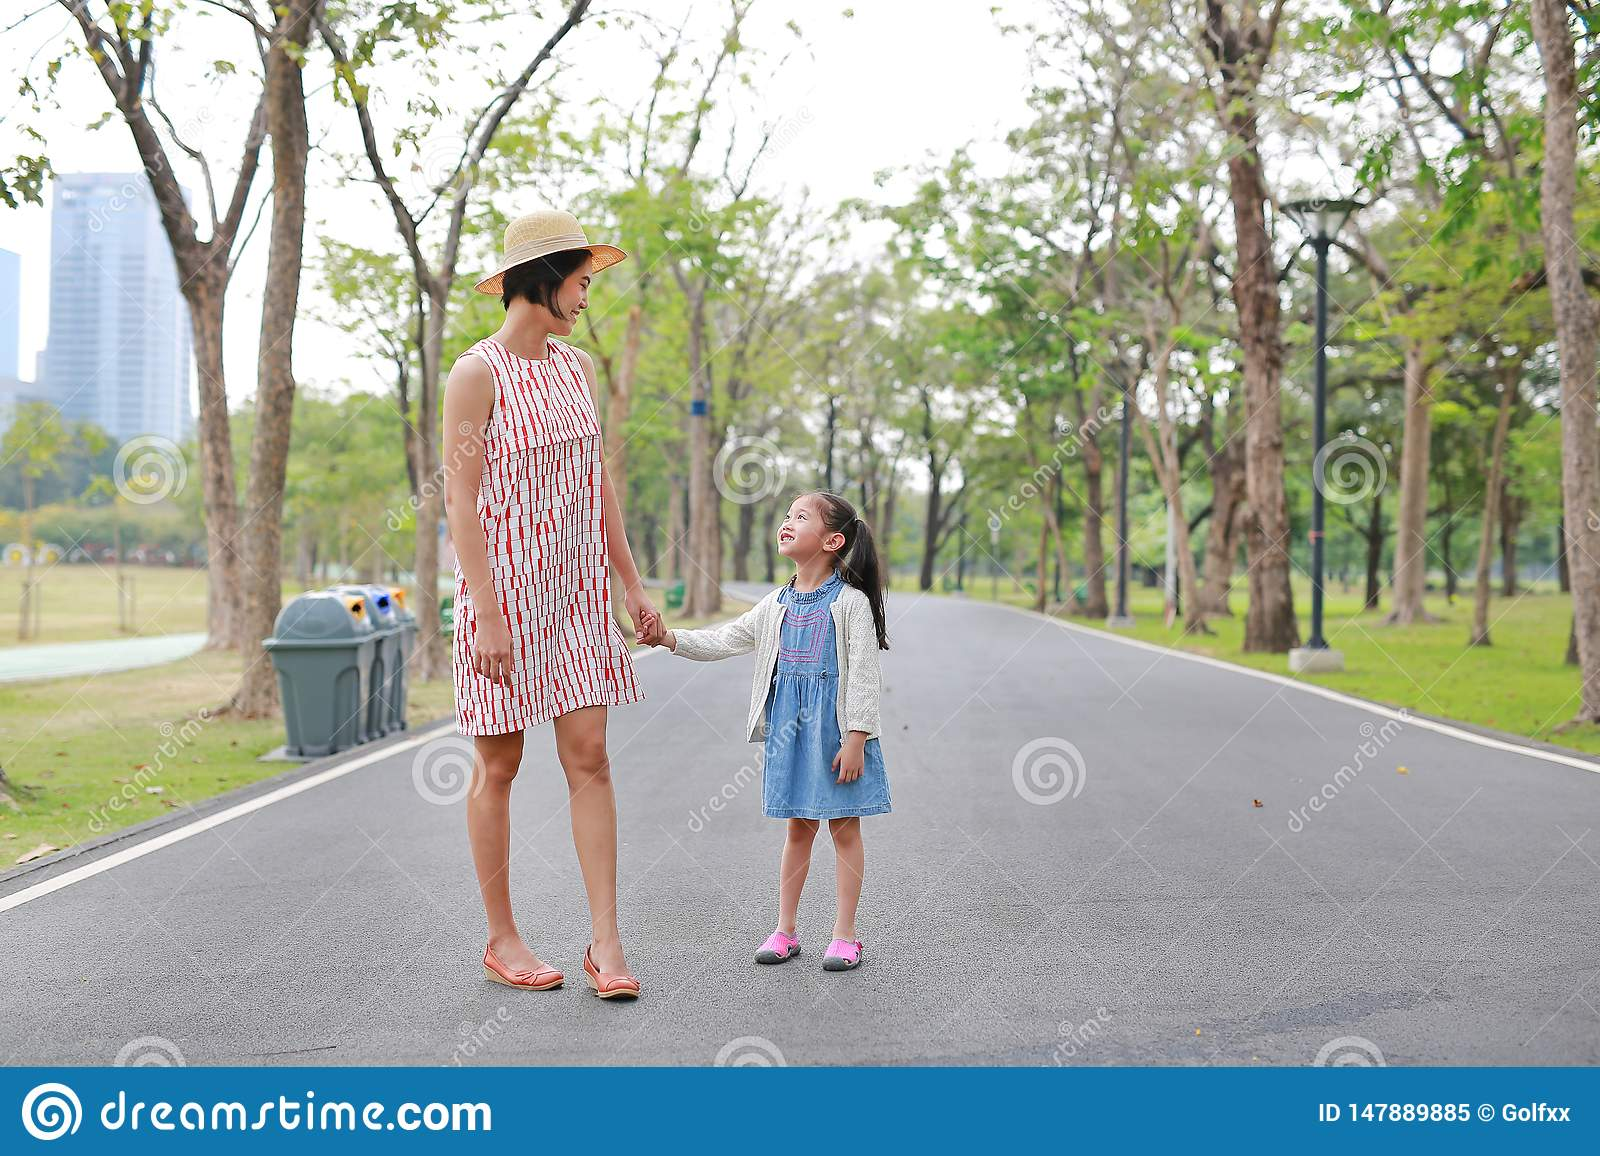 Mom and daughter holding hands in the outdoor nature garden